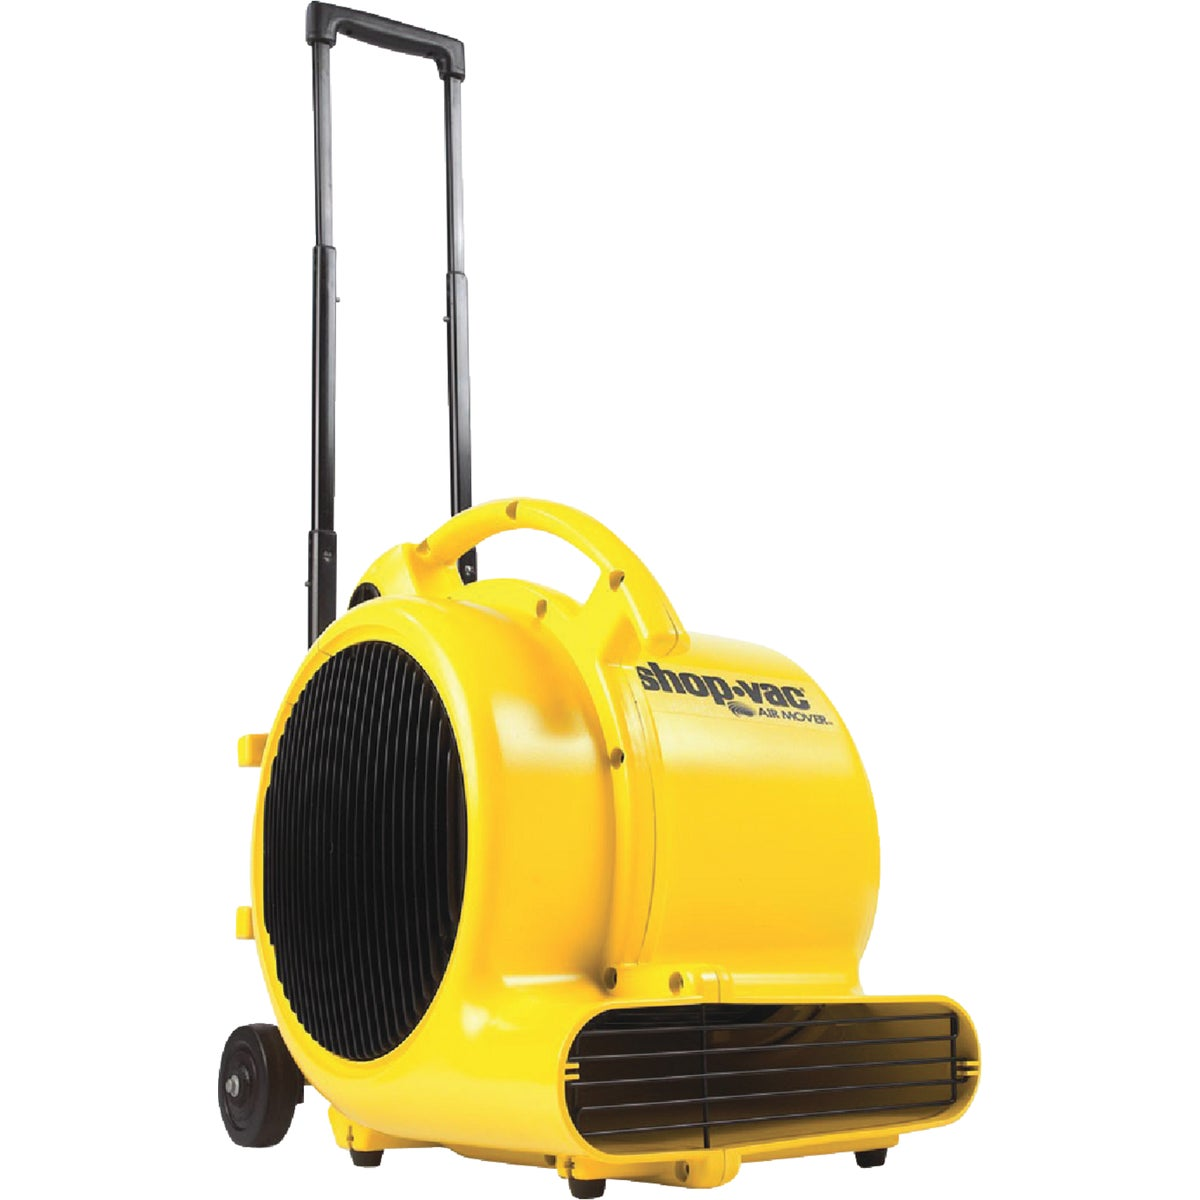 3-SPEED AIR MOVER - 1030100 by Shop Vac Corp